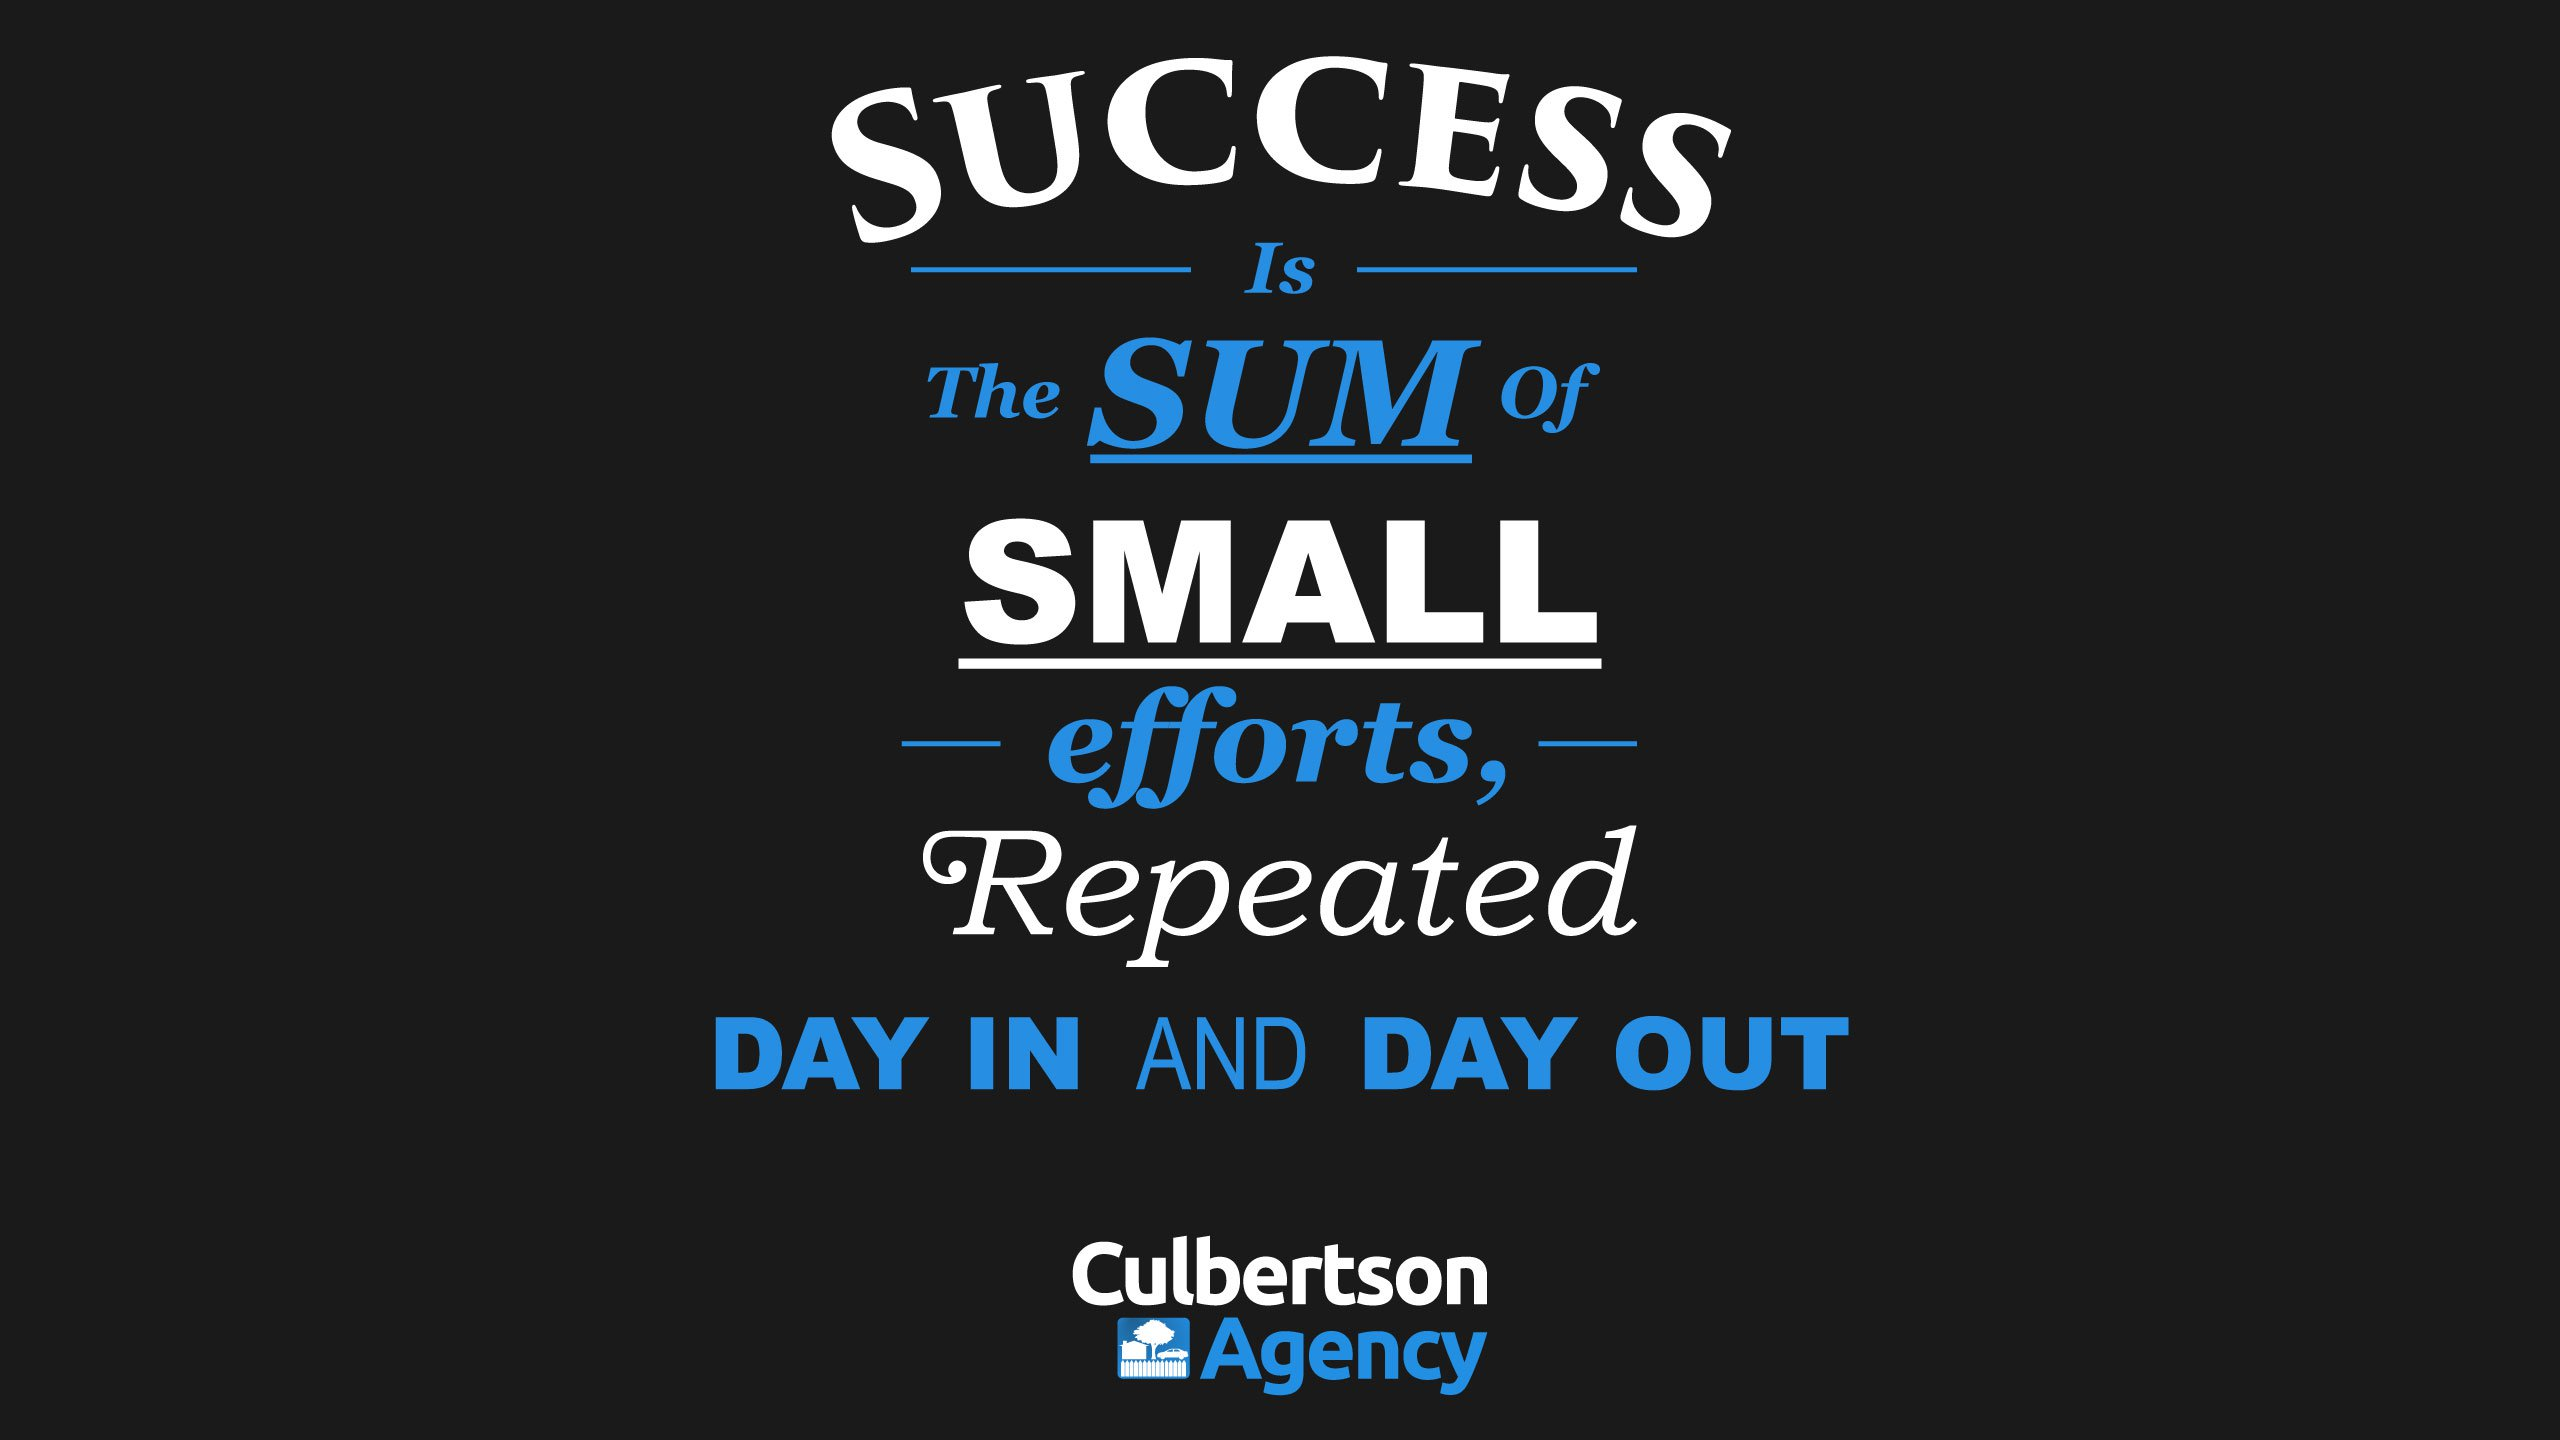 170201-success-quote